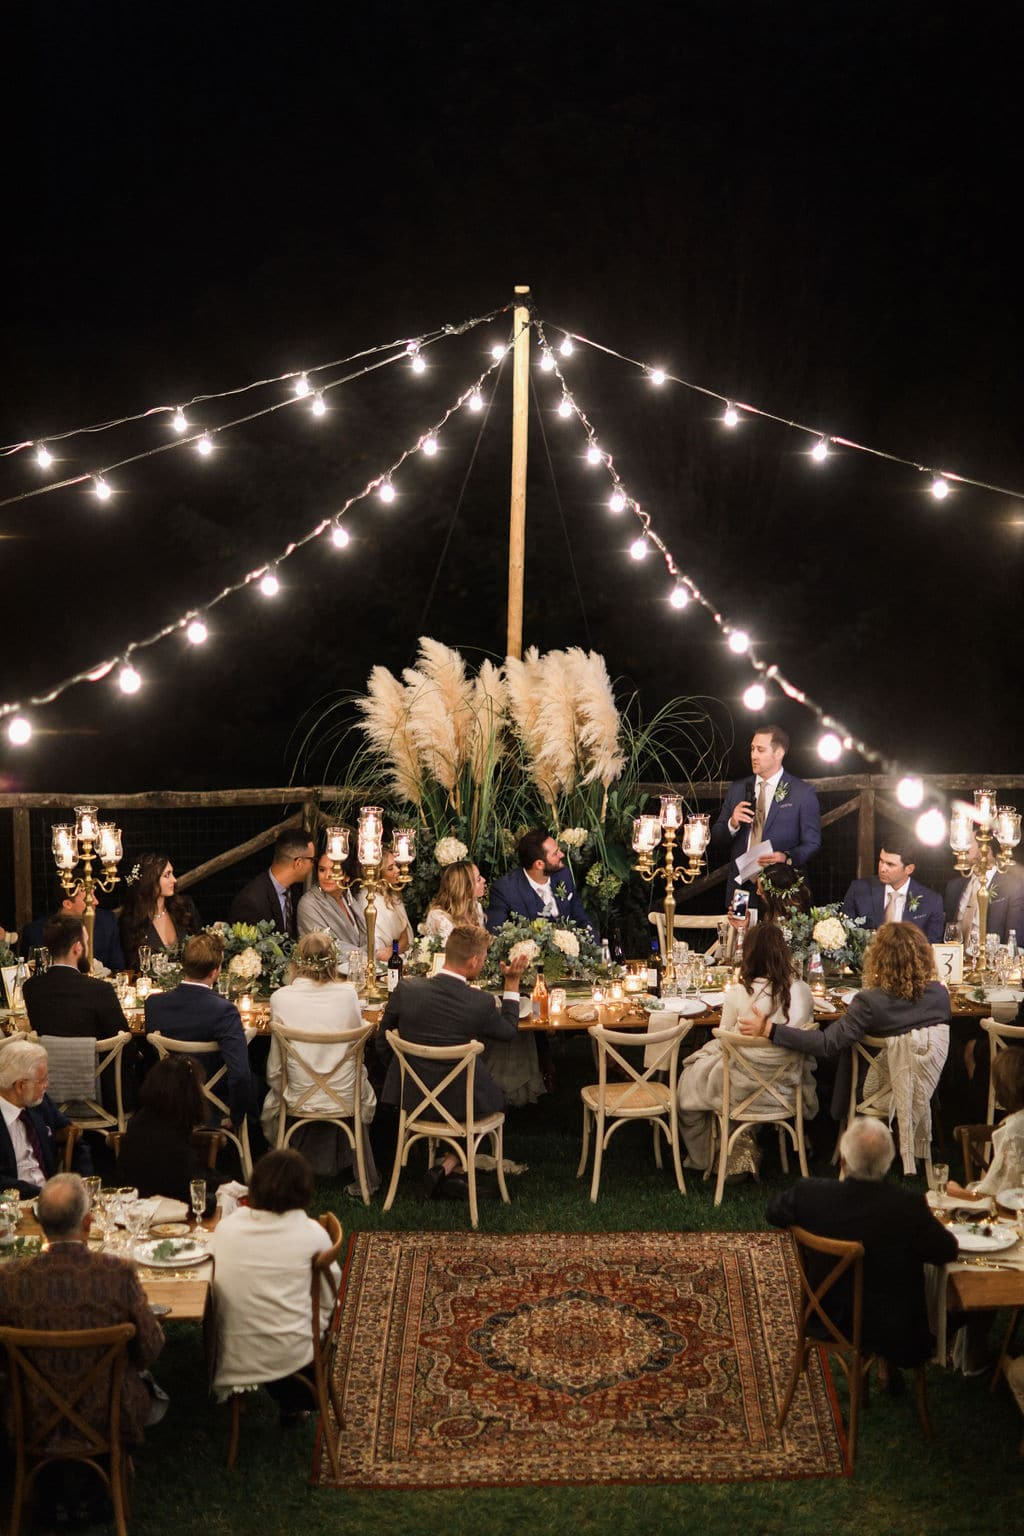 boho outdoor wedding with lights and guests seated at tables